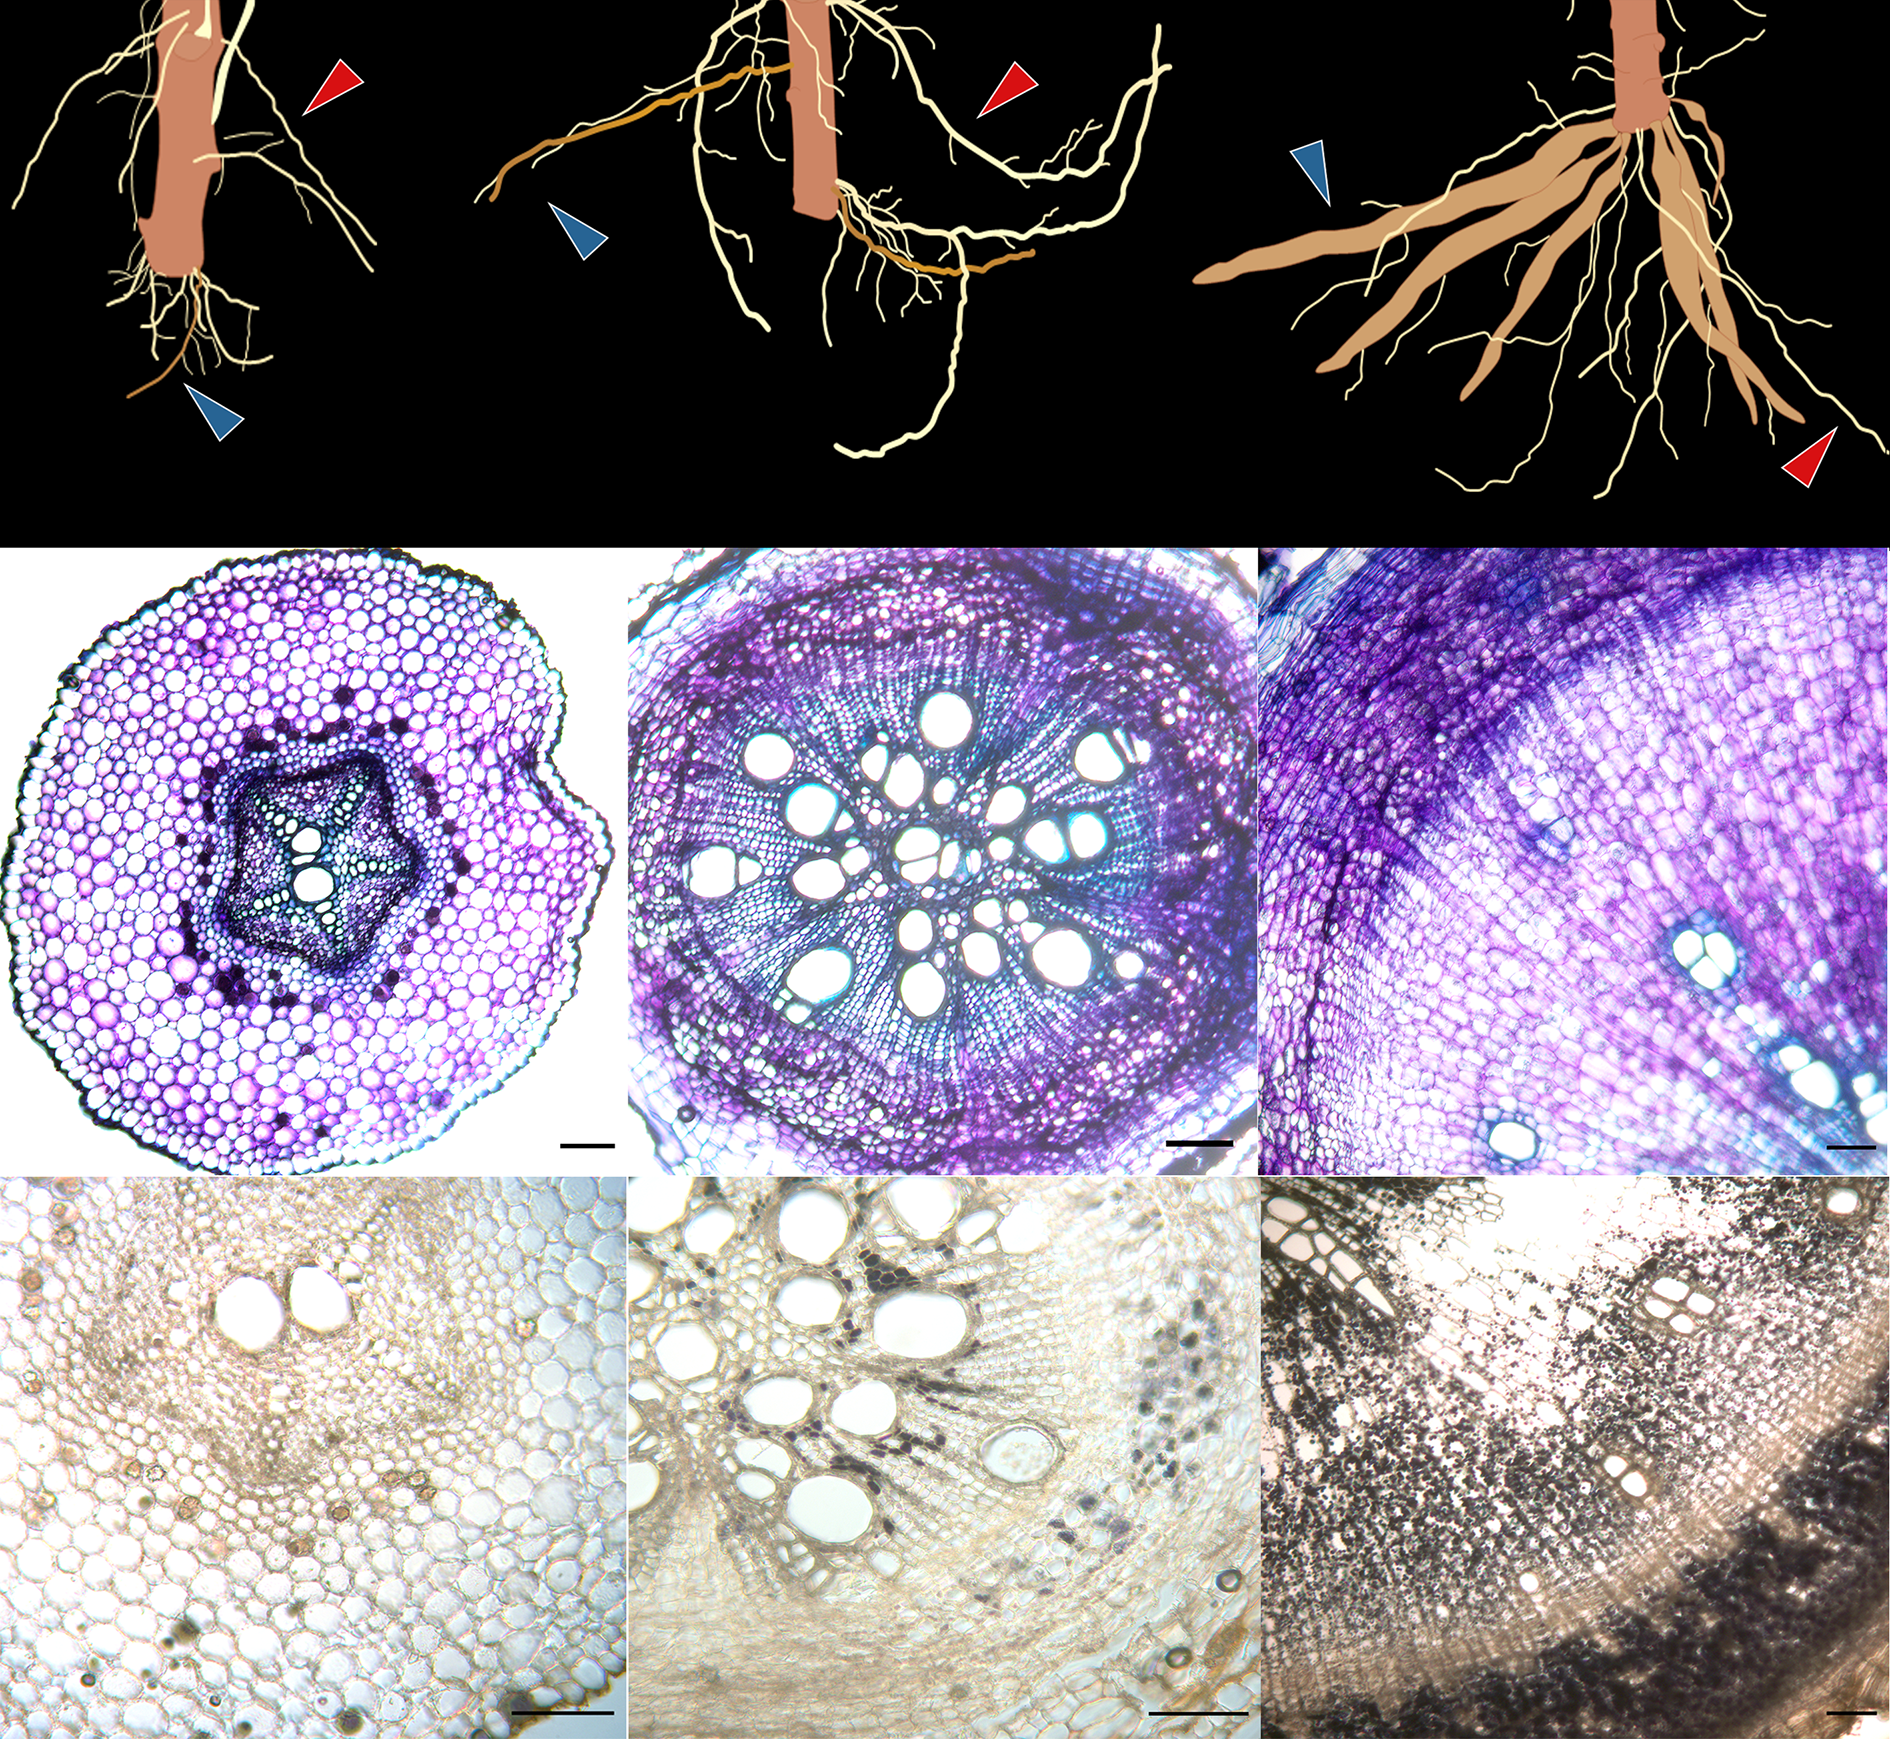 Auxin signaling and vascular cambium formation enables storage metabolism